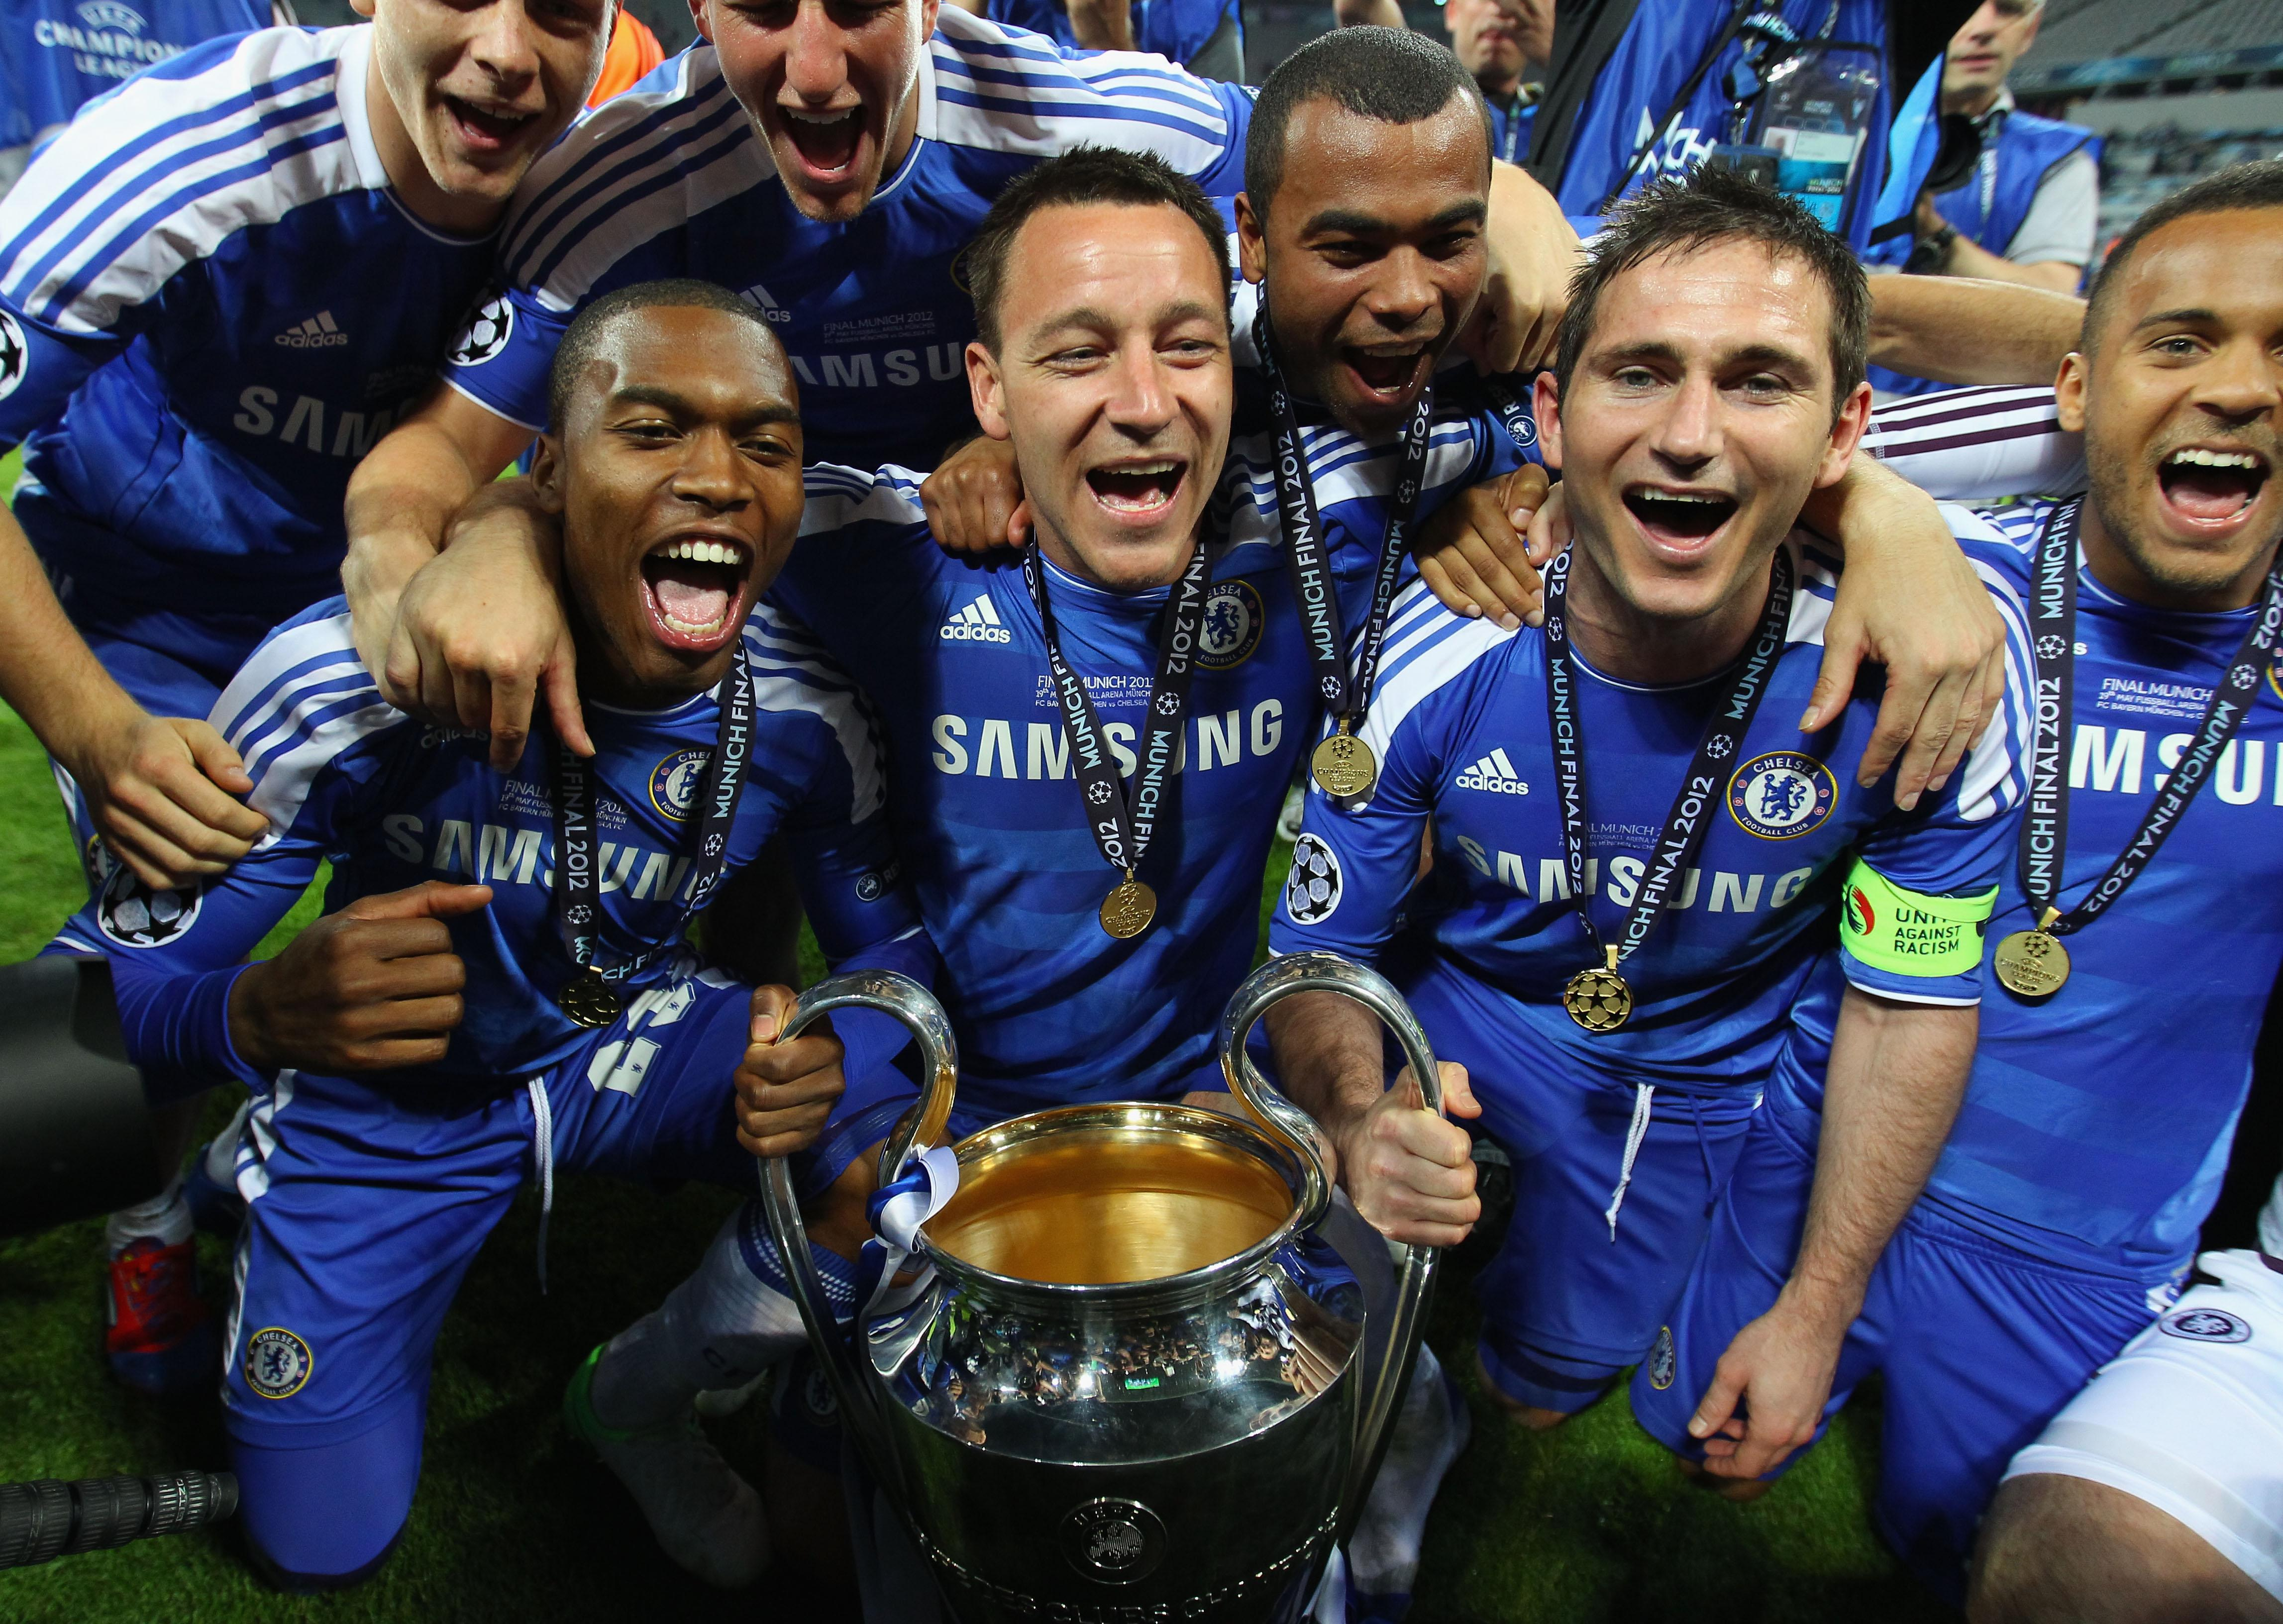 Frank Lampard enjoyed a glittering domestic career which included winning the Champions League in 2012 with Chelsea